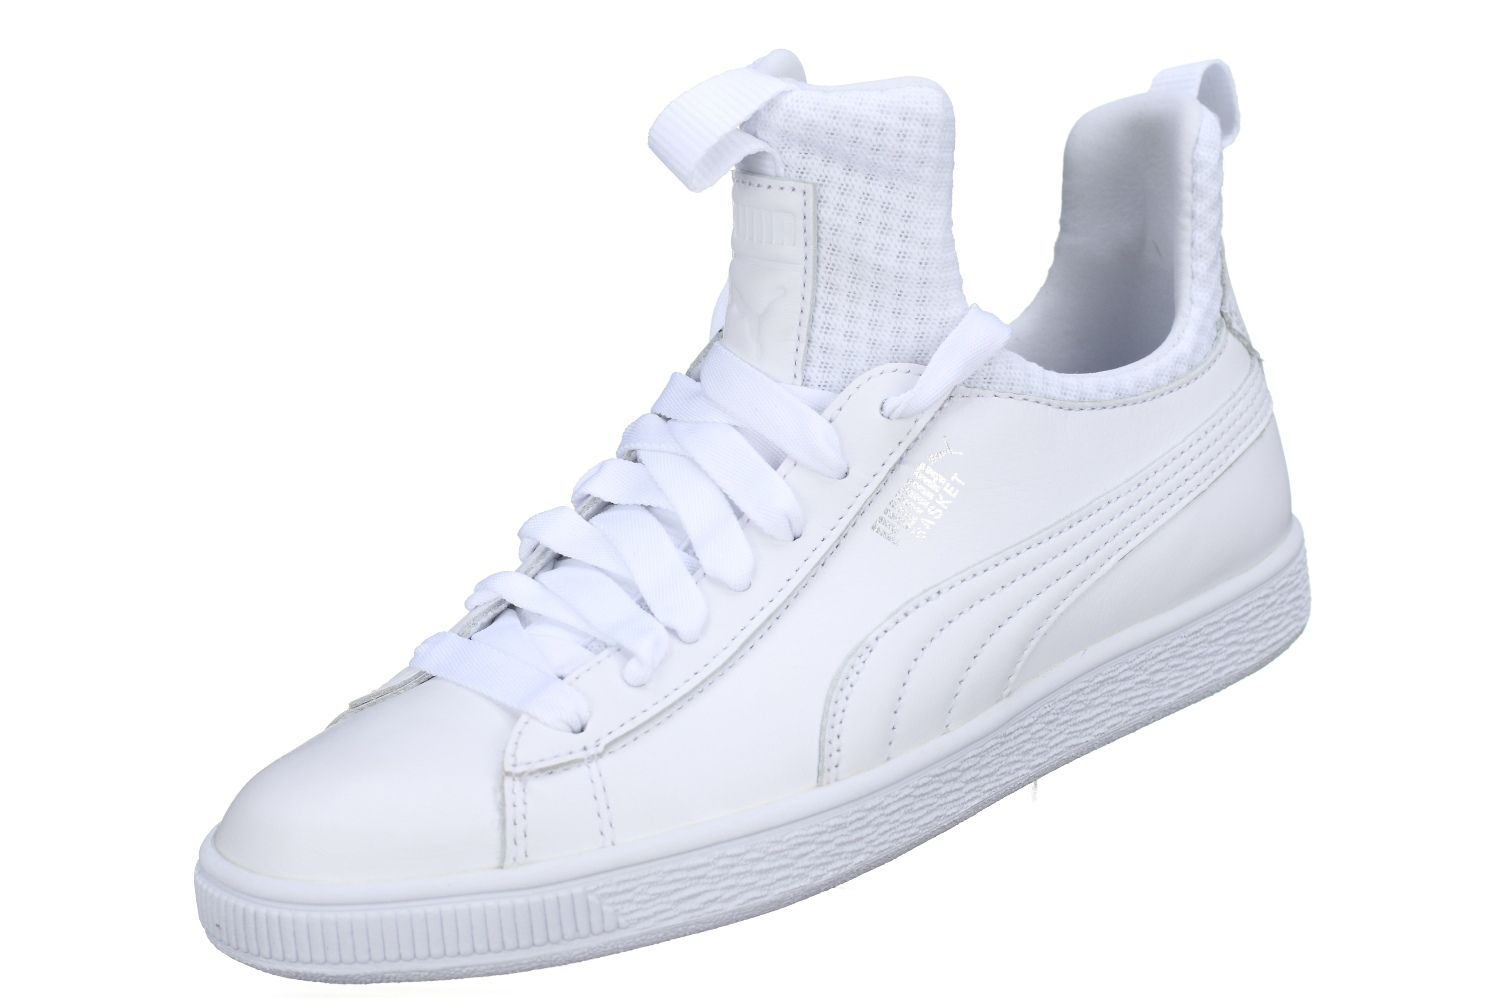 http://www.leadermode.com/143842/puma-basket-fierce-ep-wn-s-365663-01-white.jpg